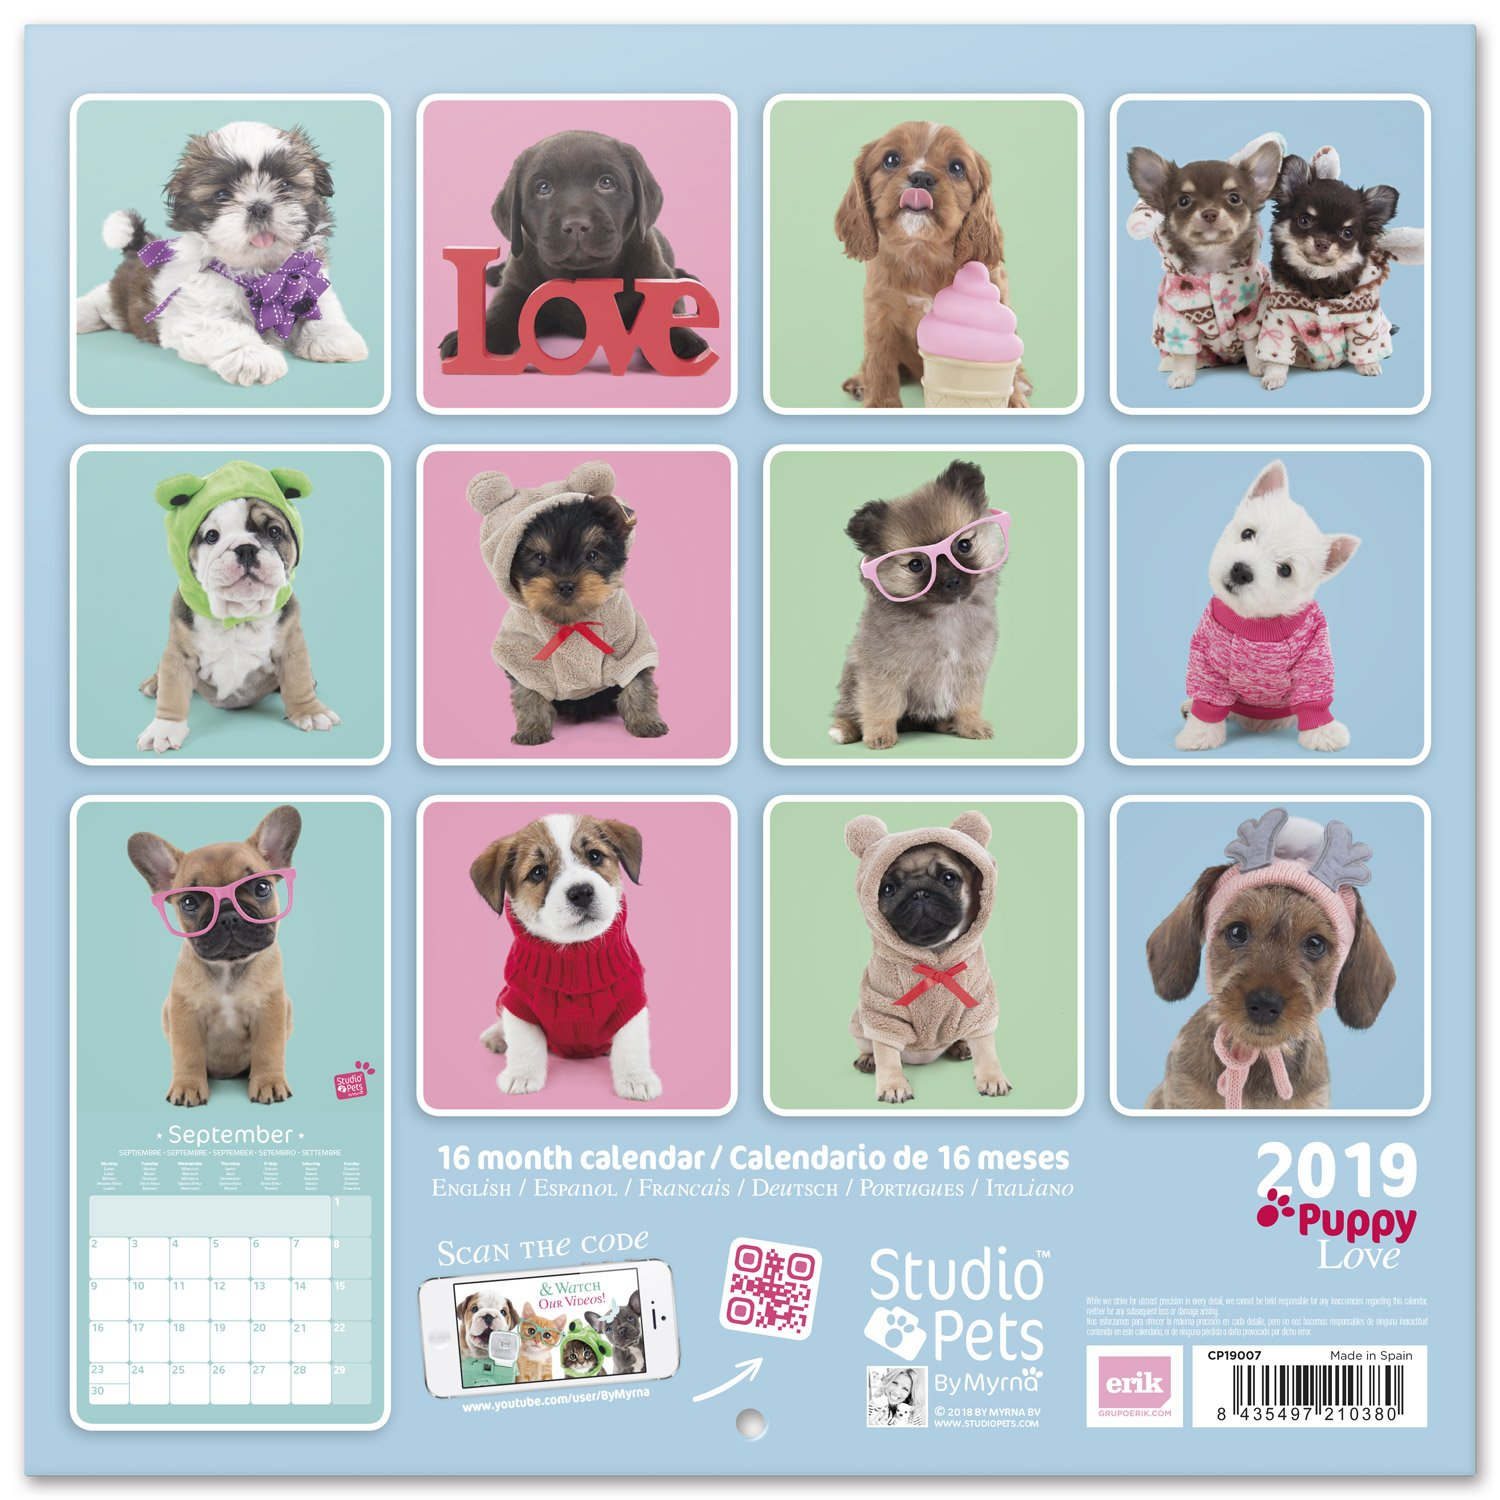 Amazon com : Grupo Erik editores Studio Pets - Calendar with